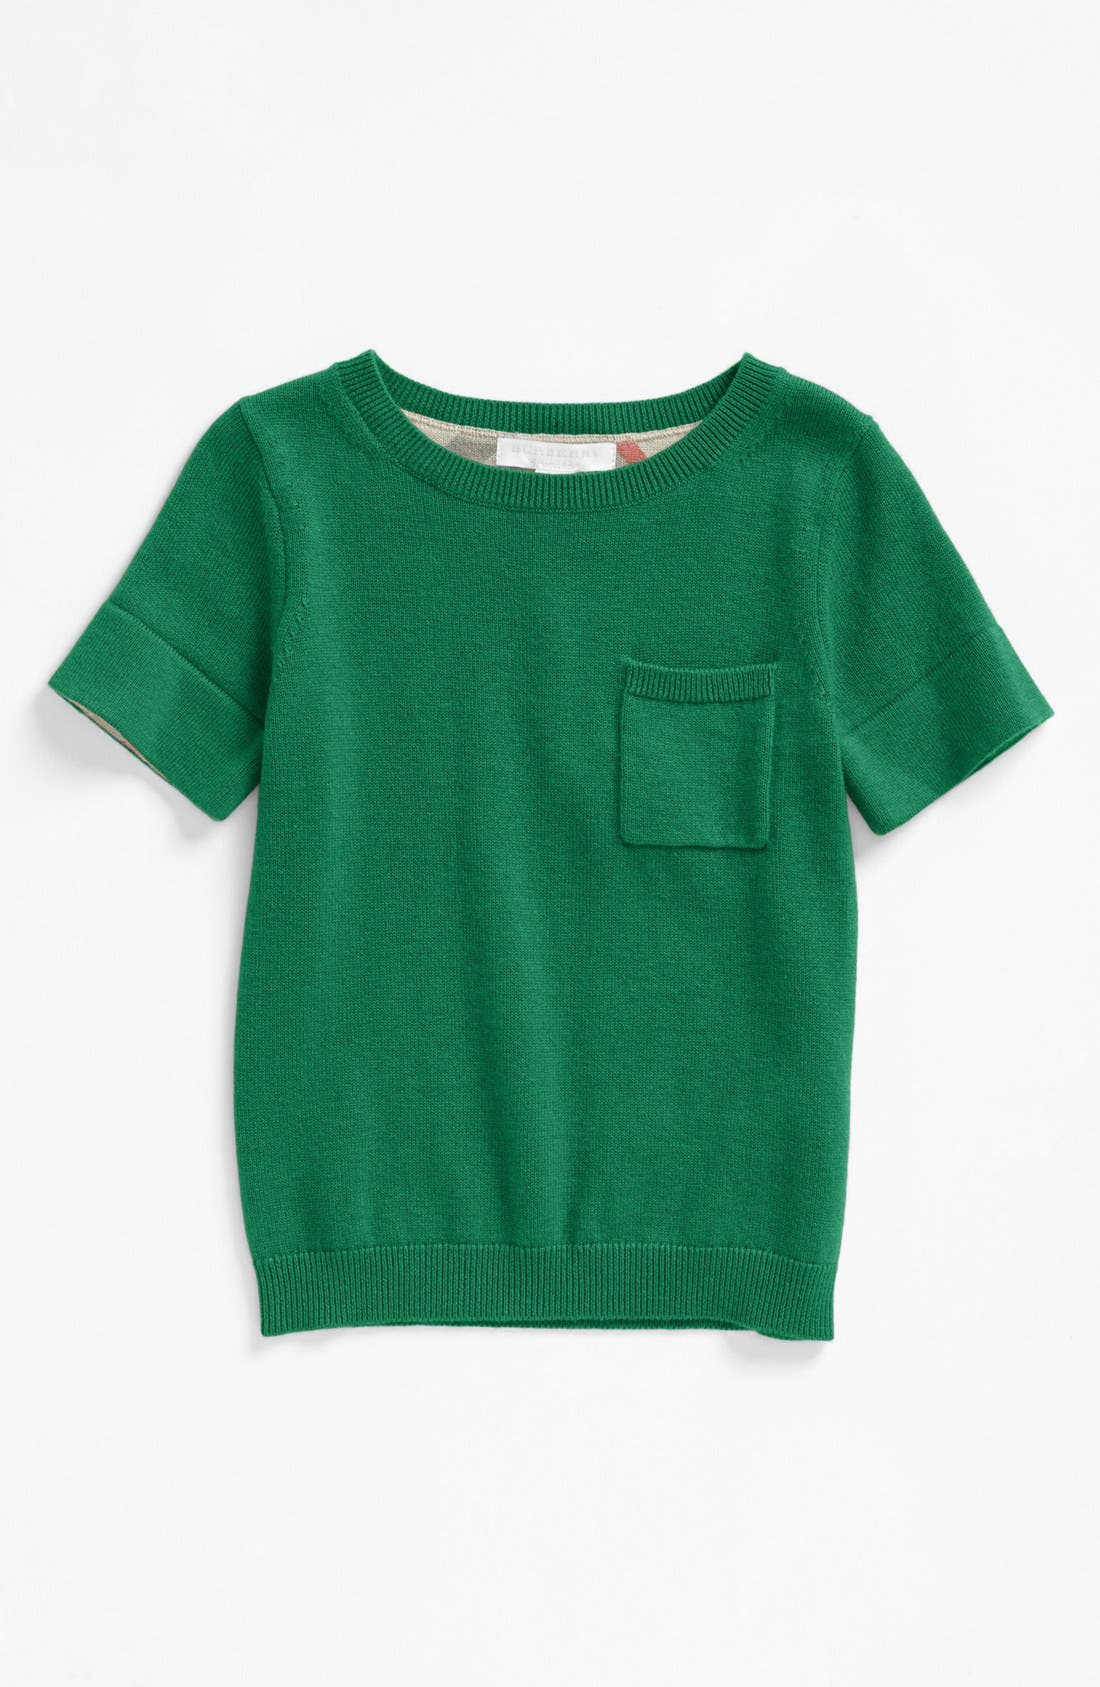 Alternate Image 1 Selected - Burberry 'Talie' Sweater (Little Girls & Big Girls)